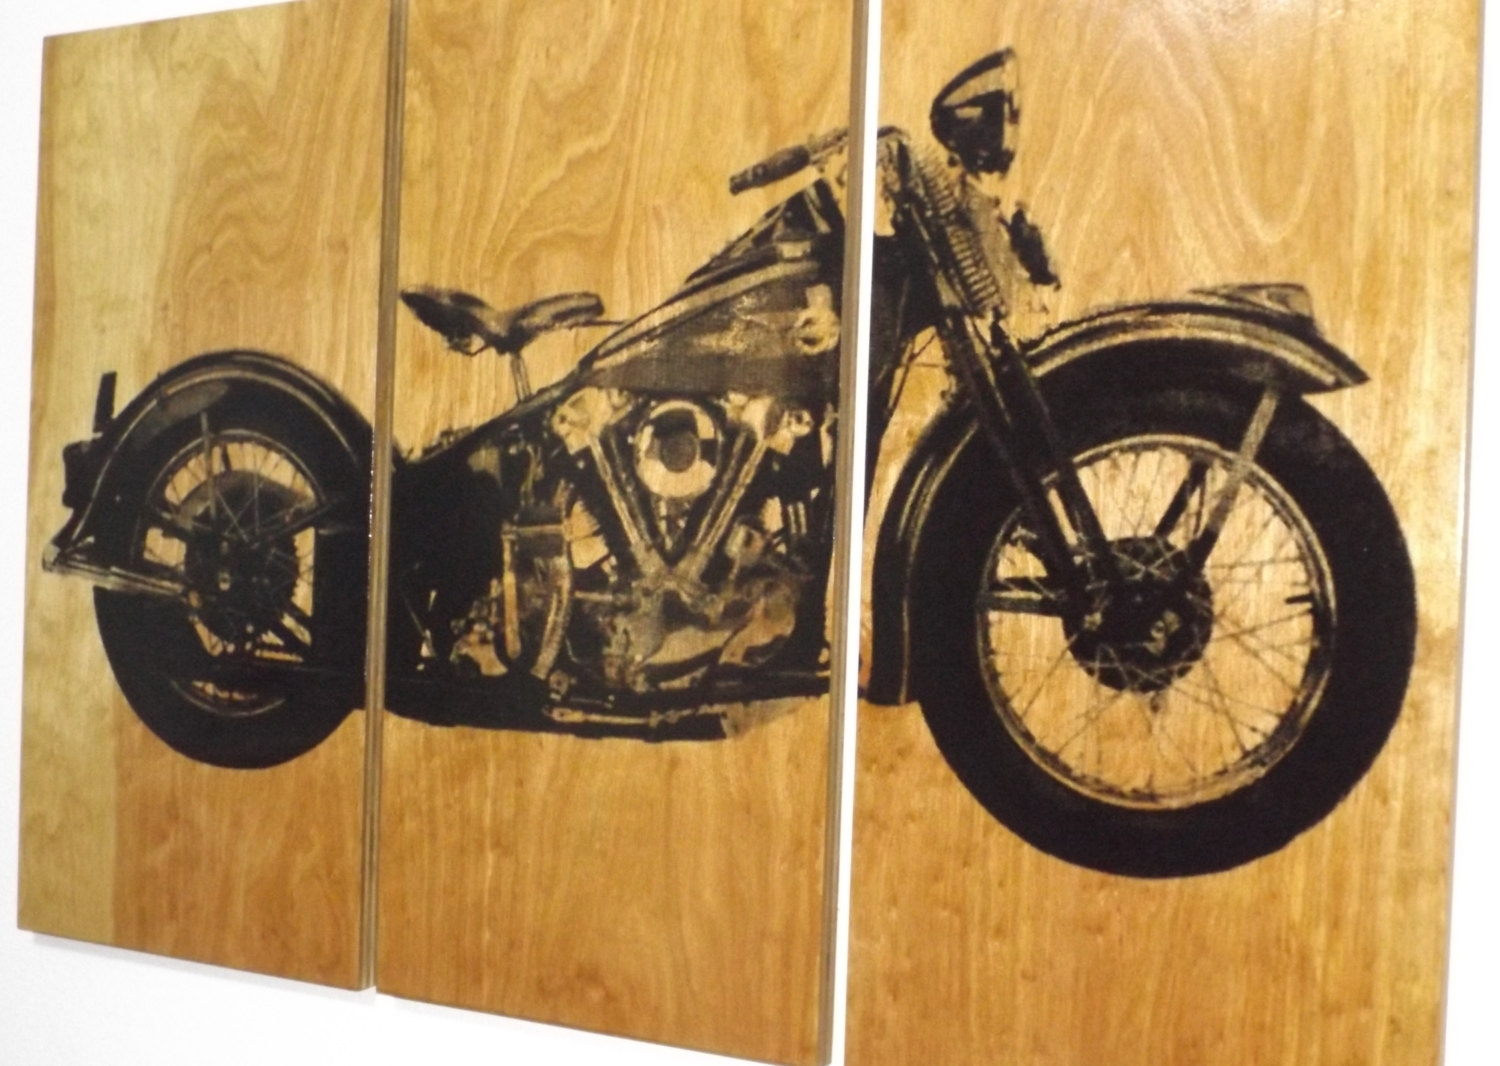 Patent Harley Motorcycle Poste Photo On Harley Davidson Wall Art With Most Up To Date Harley Davidson Wall Art (View 20 of 20)